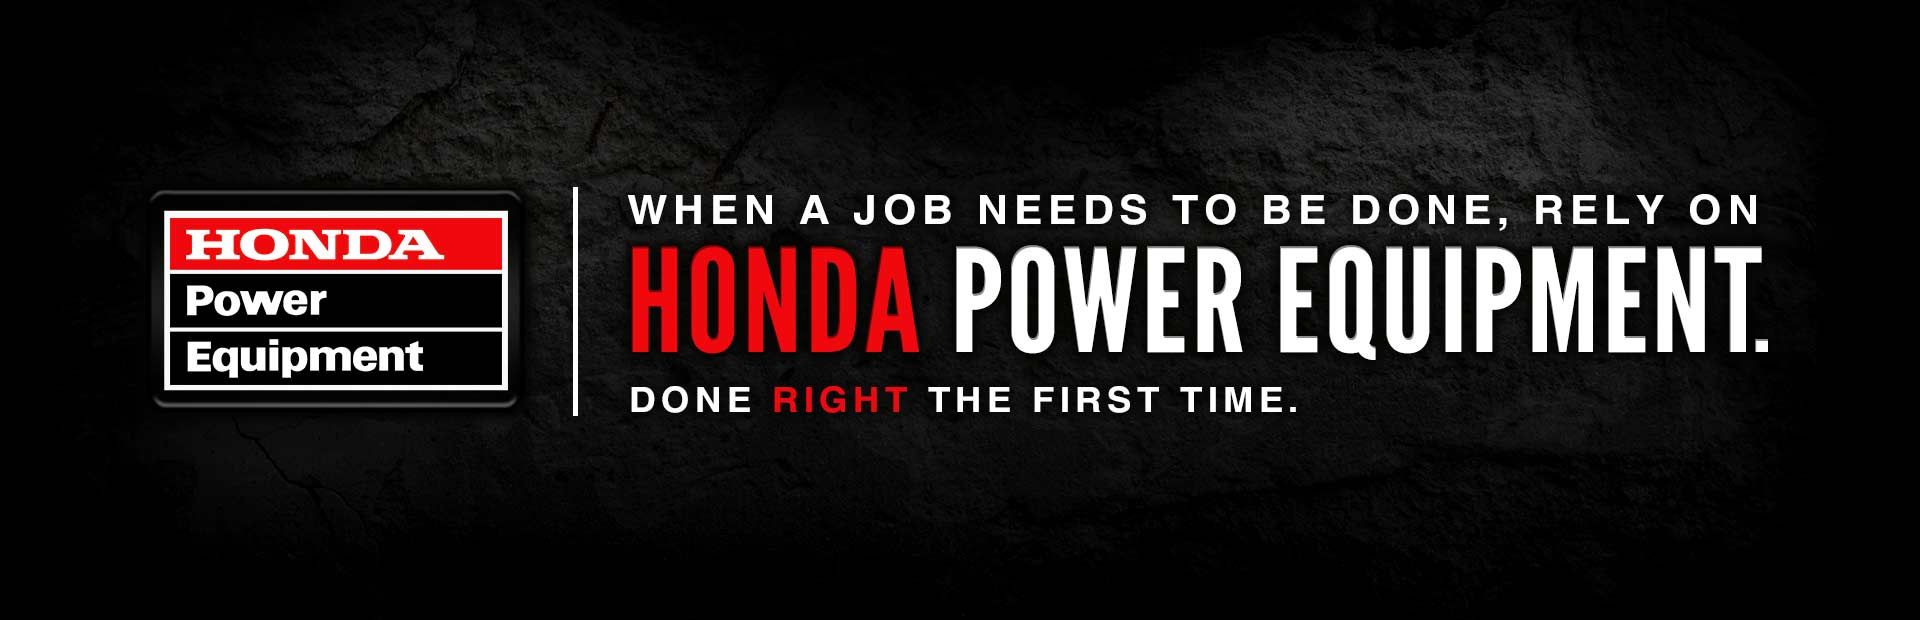 Click here to view Honda Power Equipment.